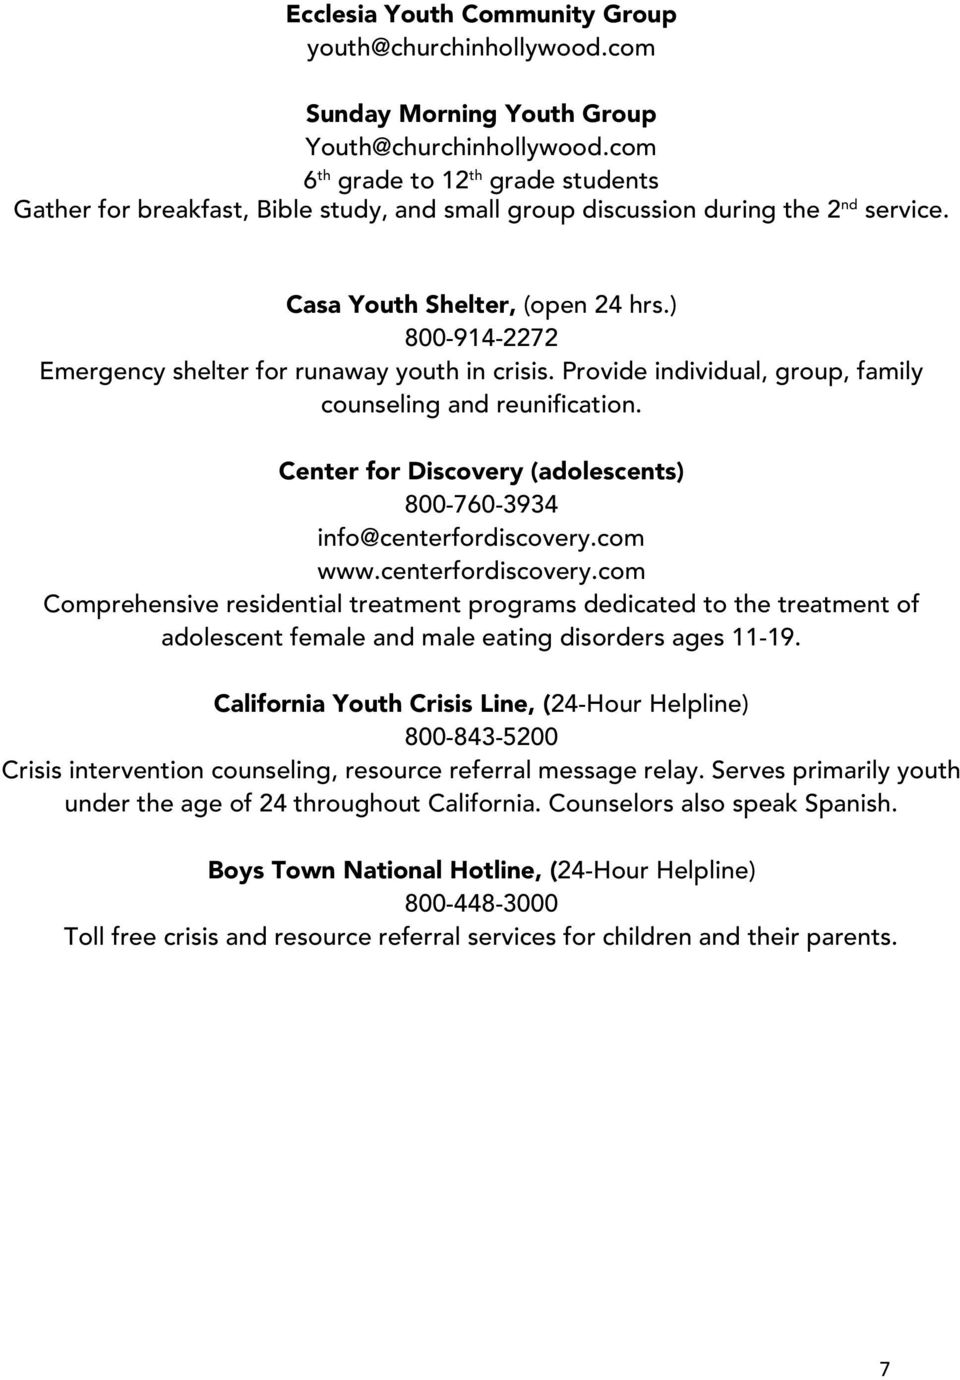 ) 800-914-2272 Emergency shelter for runaway youth in crisis. Provide individual, group, family counseling and reunification. Center for Discovery (adolescents) 800-760-3934 info@centerfordiscovery.